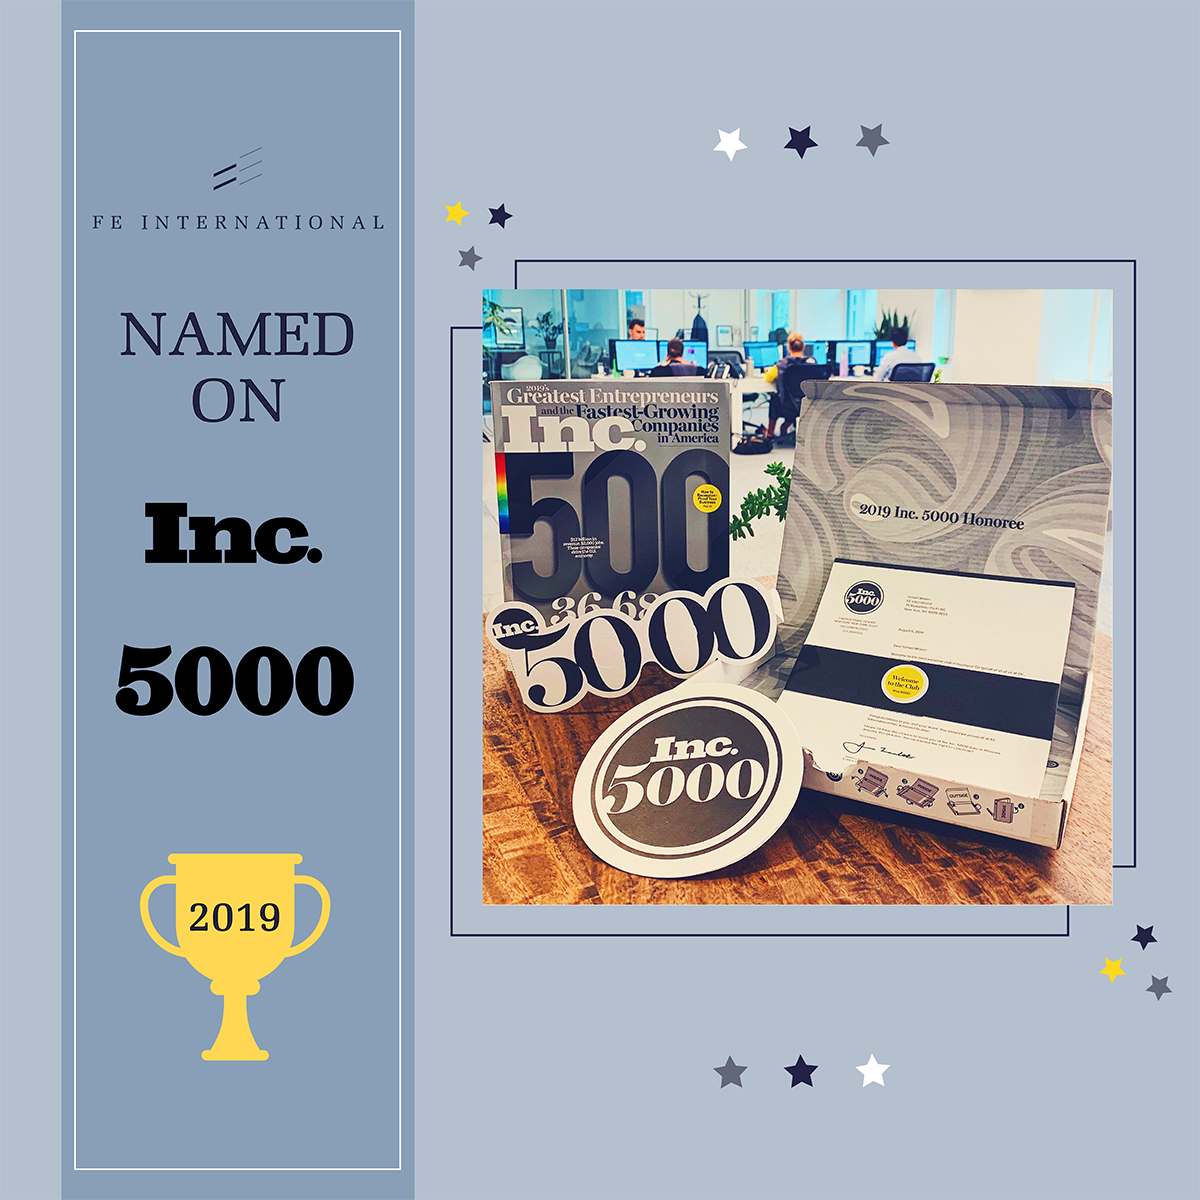 FE International Recognized on the Inc 5000 US 2019 List